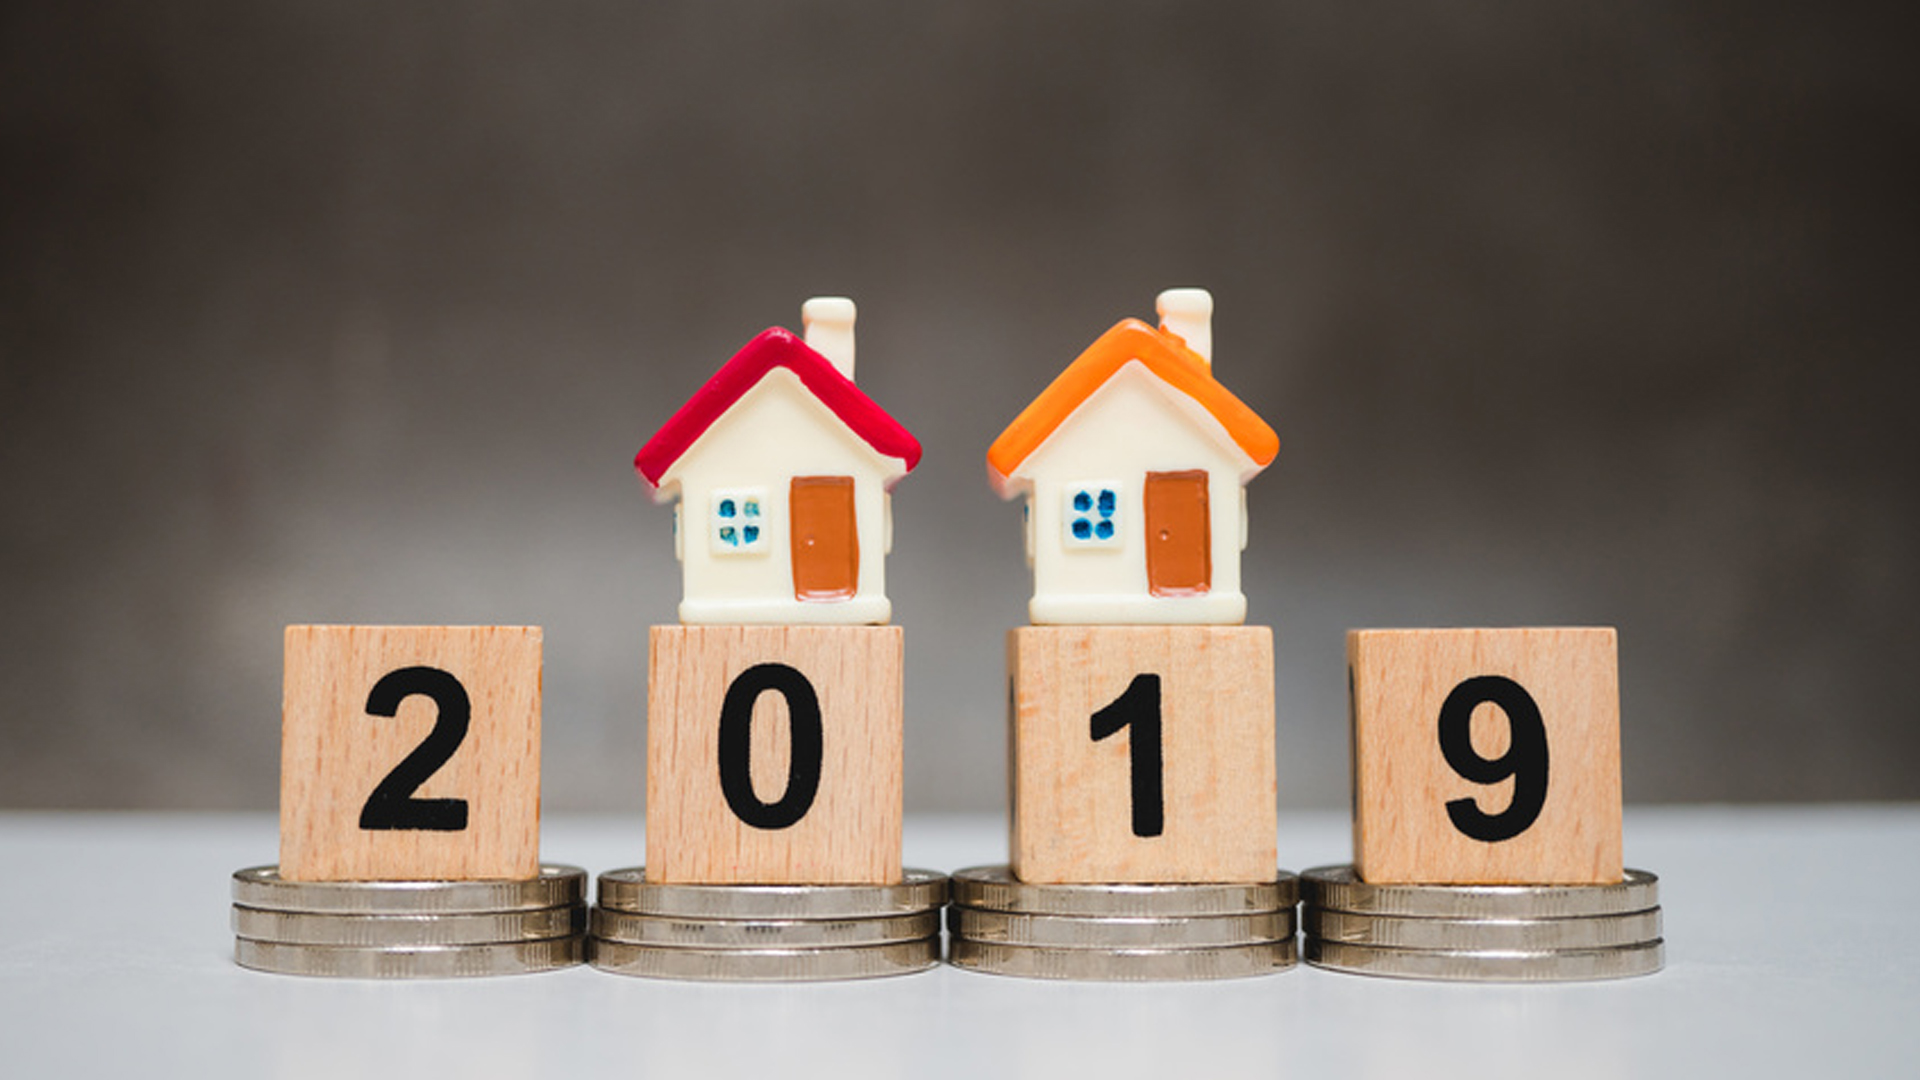 PREDICTIONS FOR THE 2019 PROPERTY MARKET